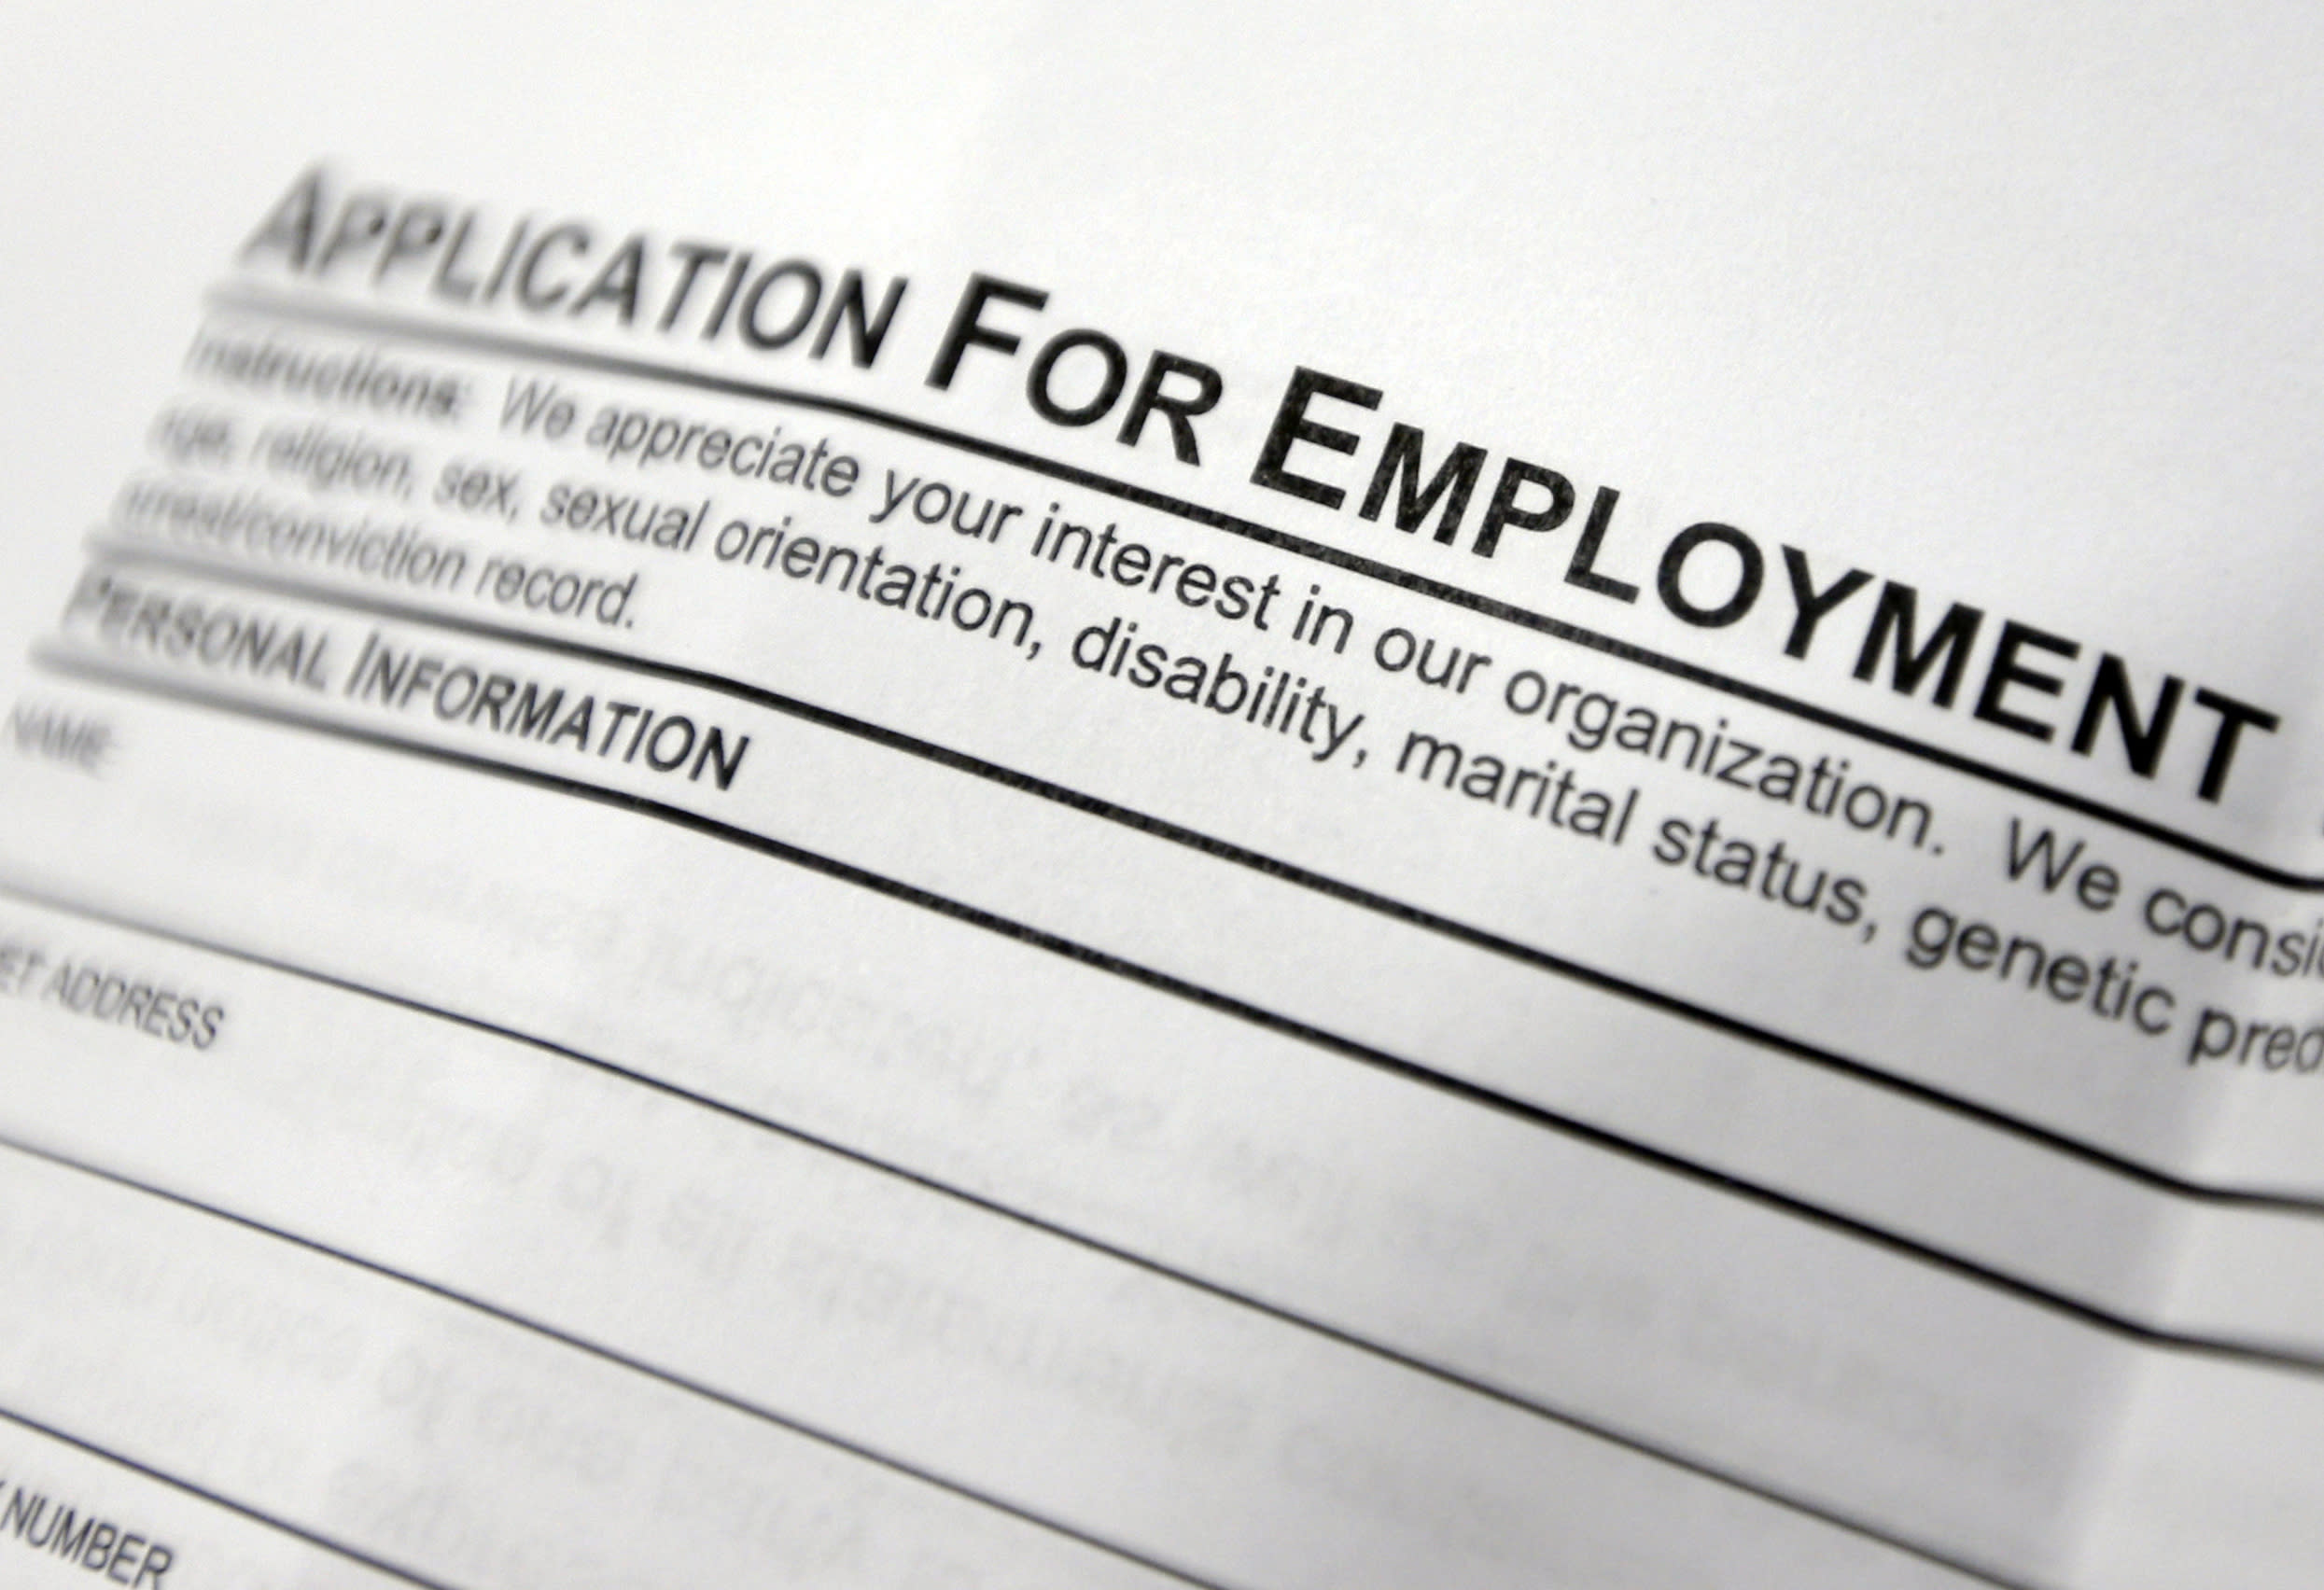 Applications for US jobless aid rise, but levels still low